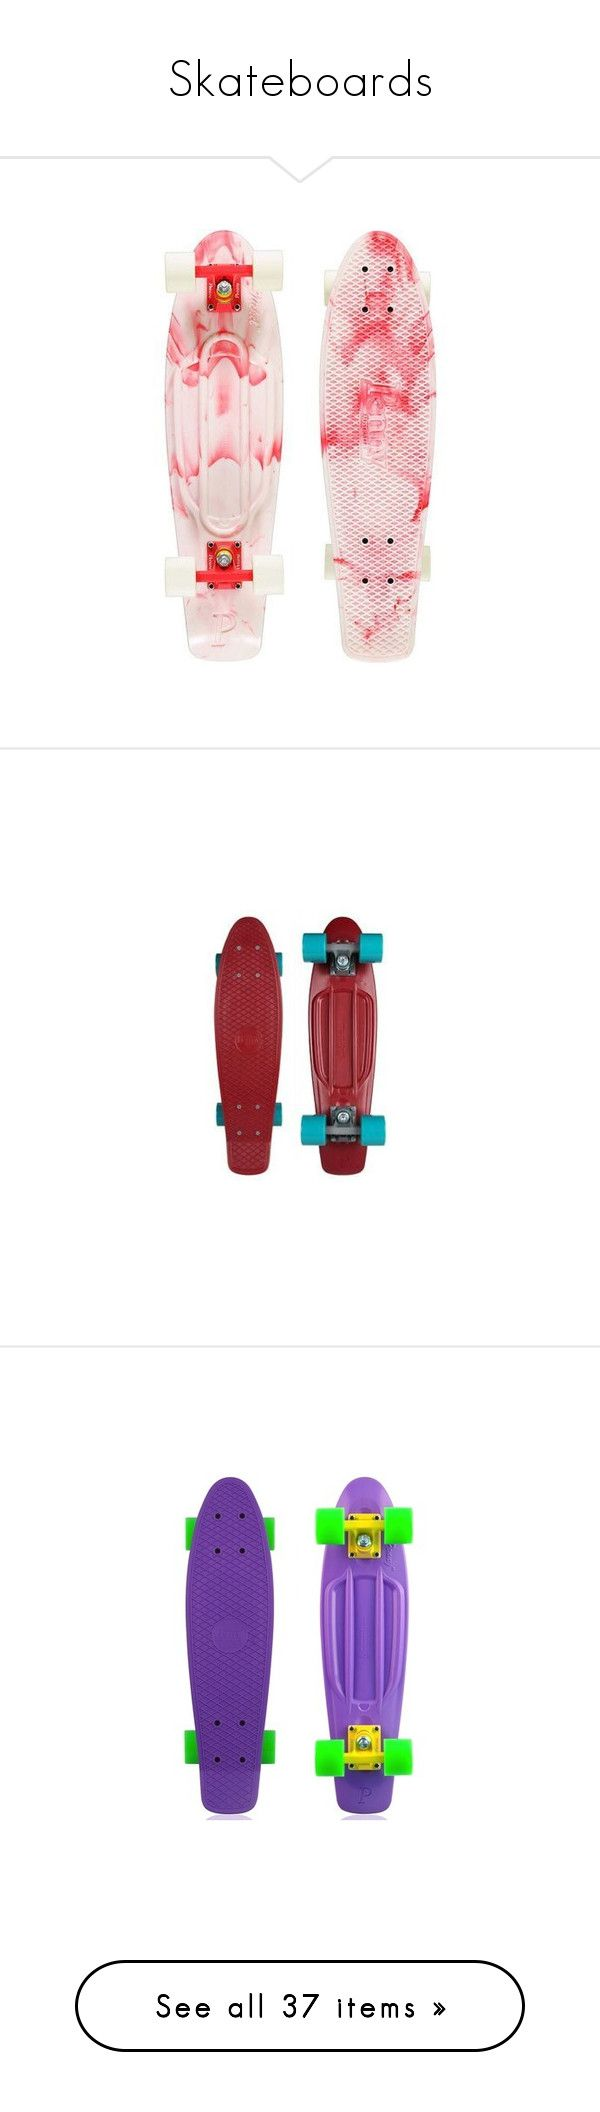 """Skateboards"" by cherry-demon ❤ liked on Polyvore featuring fillers, skateboard, boards, fillers - pink, penny boards, red fillers, other, skateboards, accessories and board"